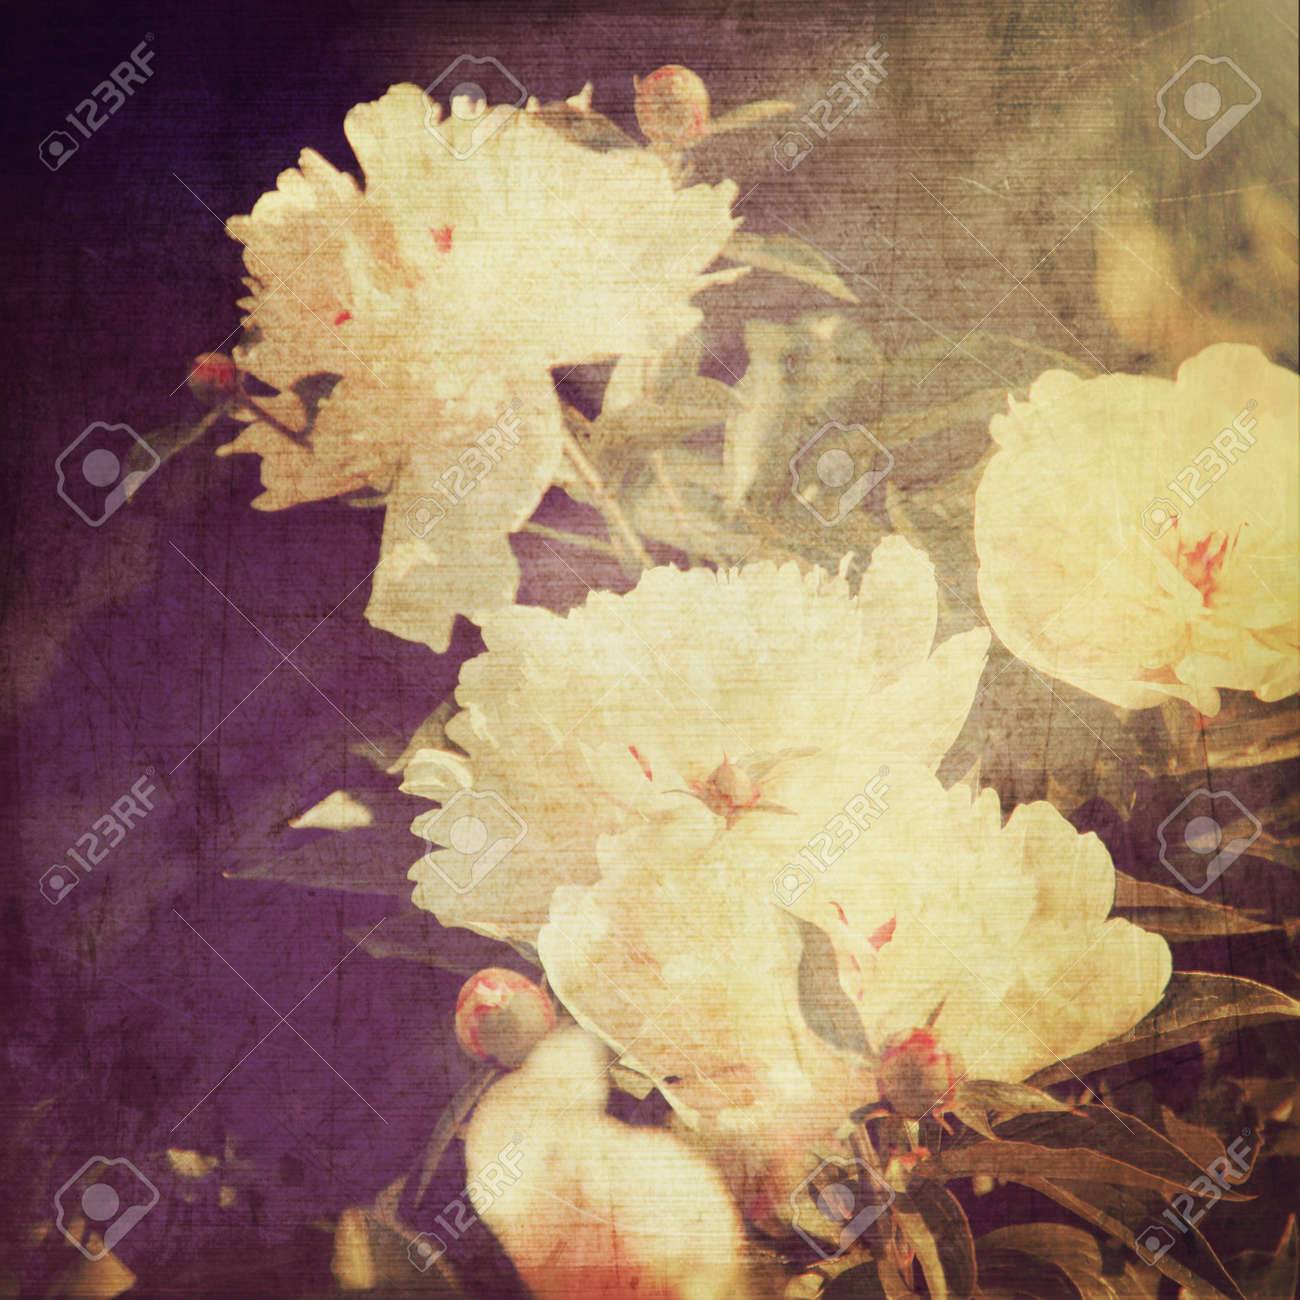 art floral vintage background with white peonies Stock Photo - 21169808